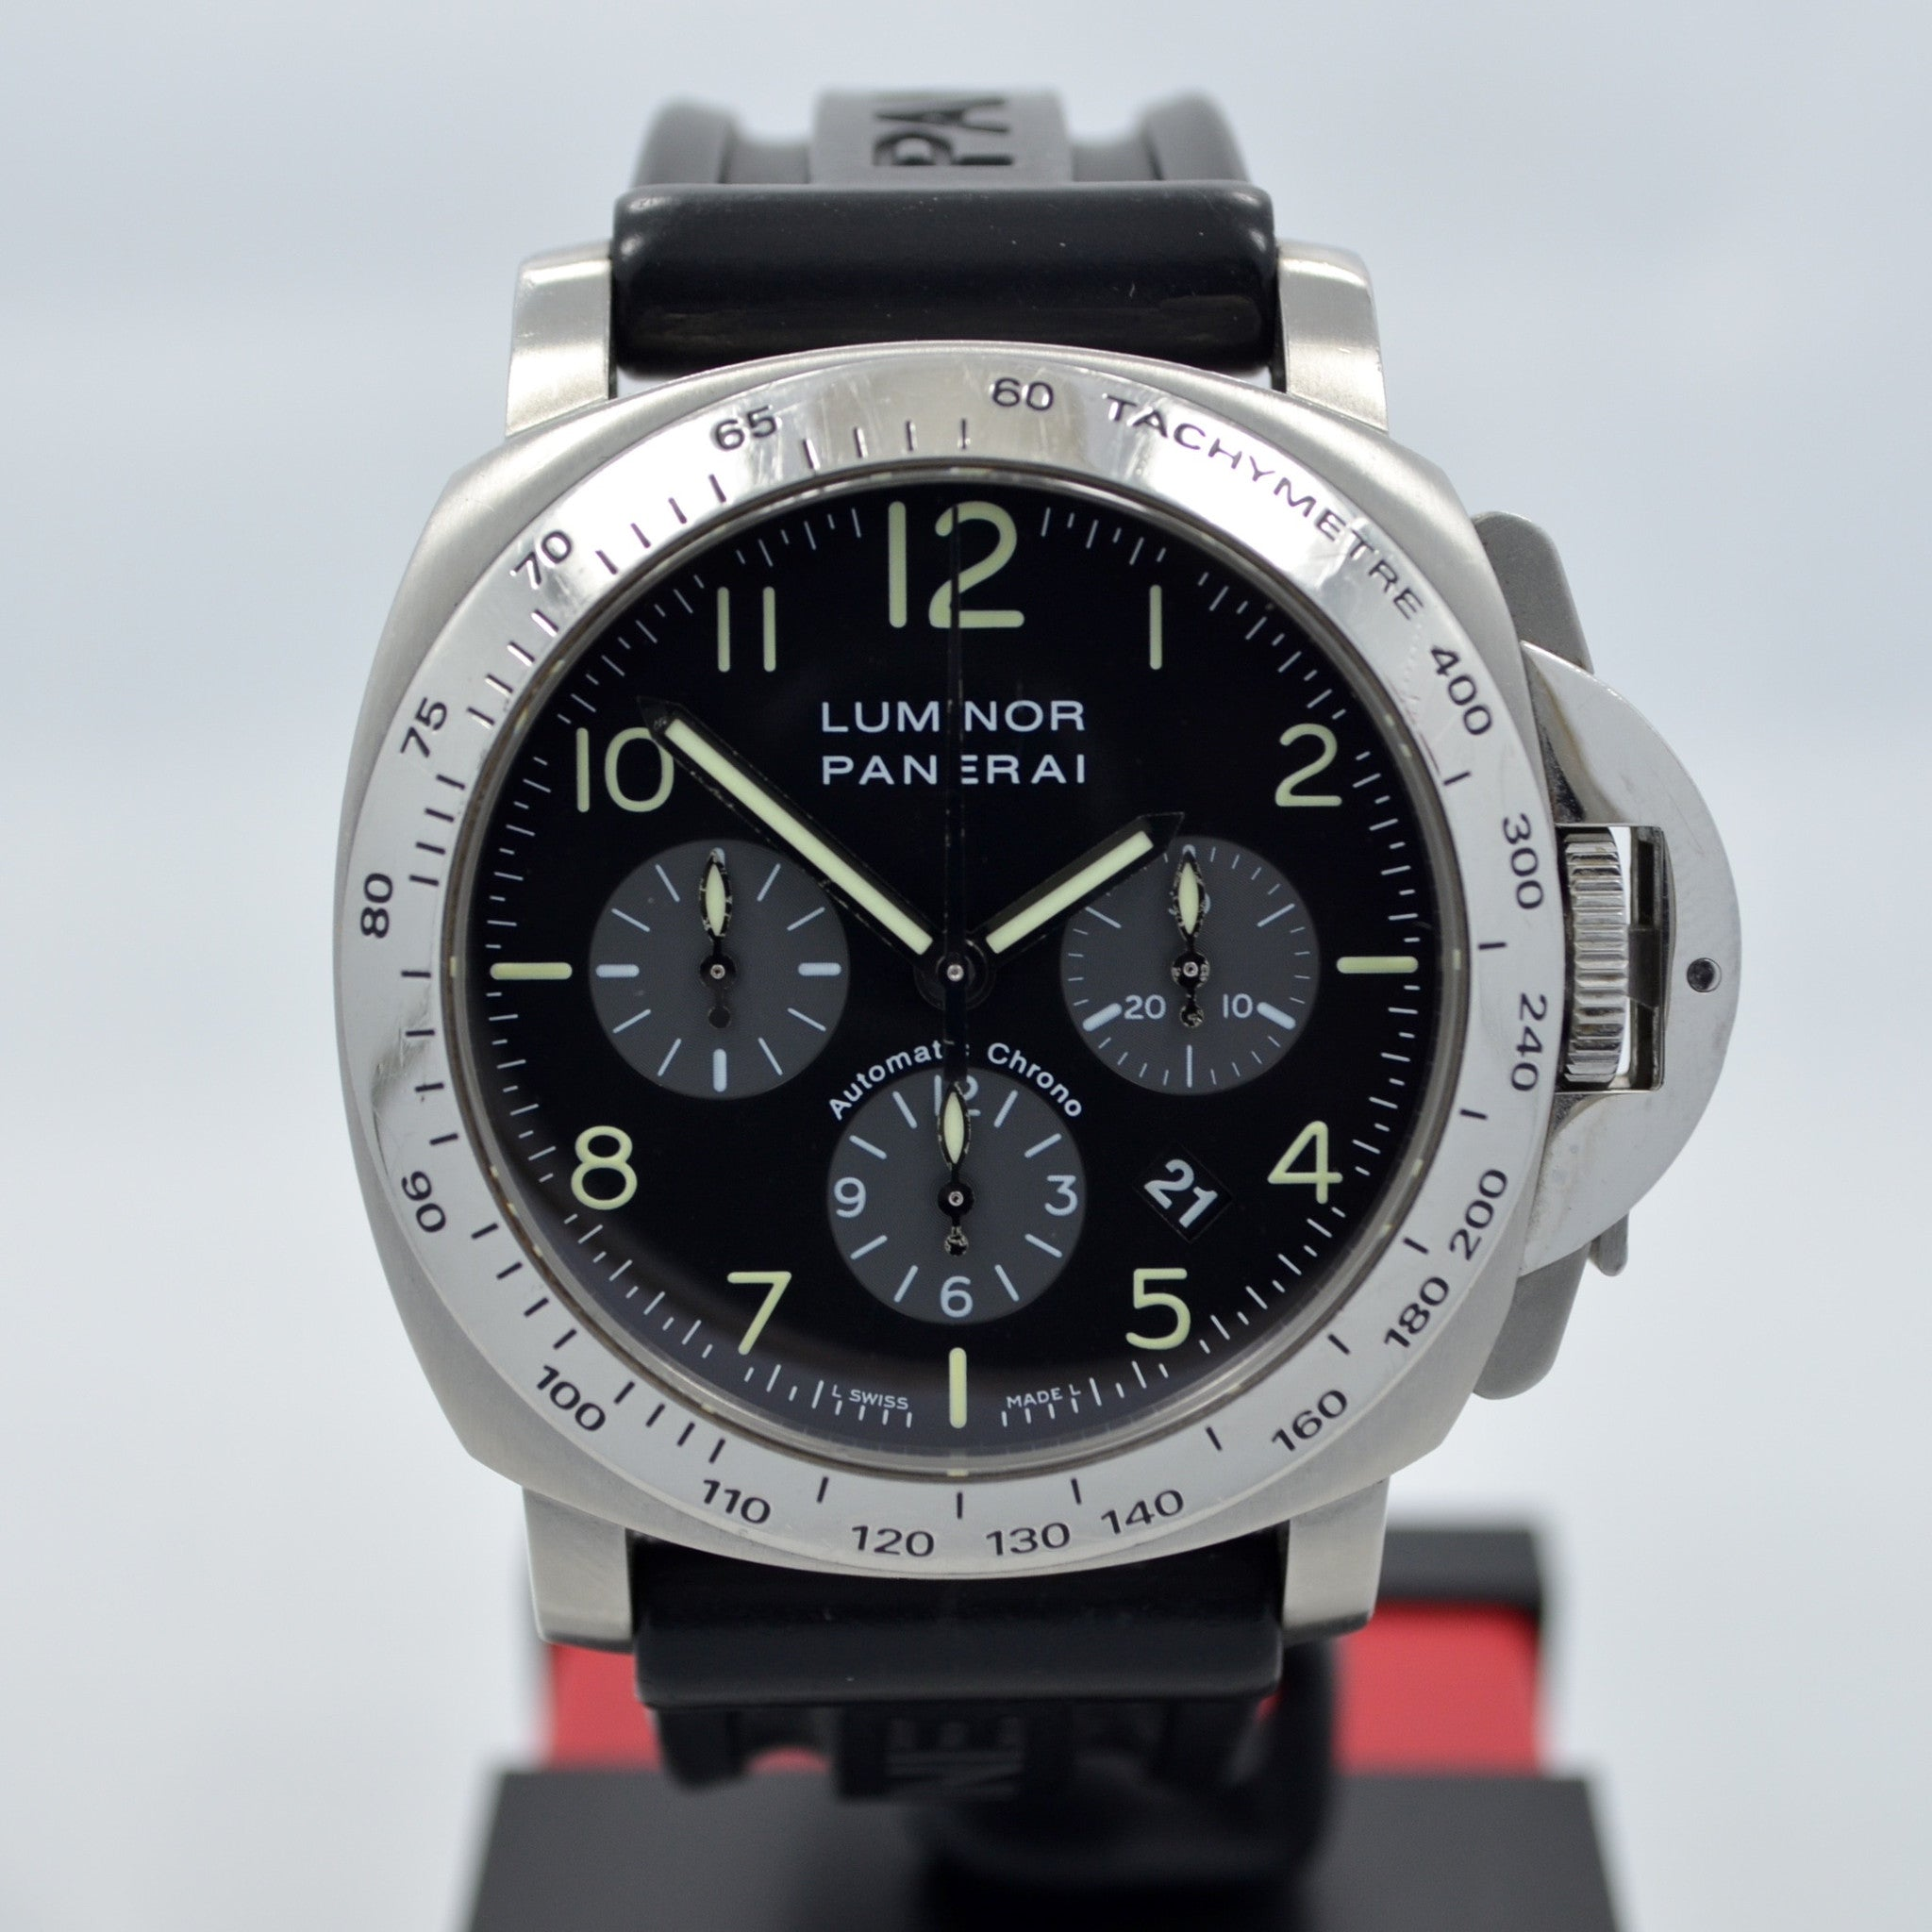 Panerai Luminor Chronograph PAM 162 Steel Automatic Wristwatch - Hashtag Watch Company